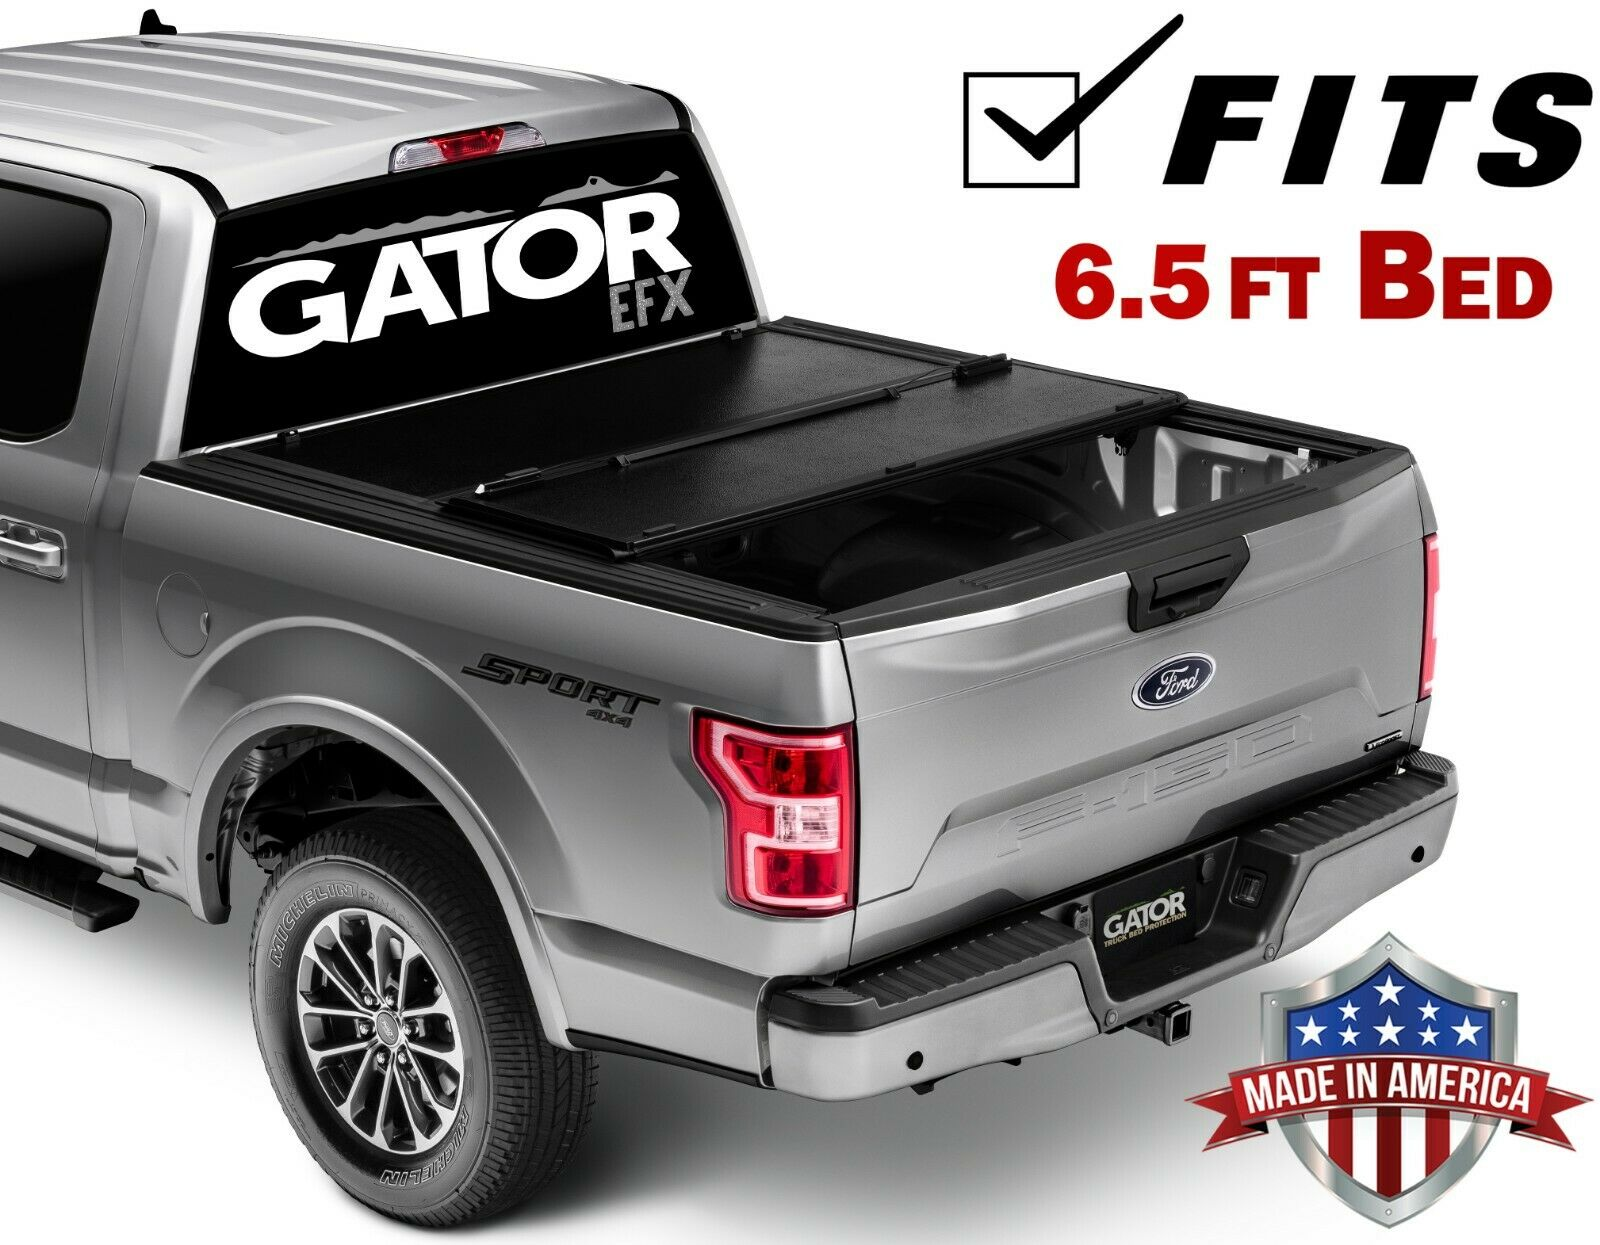 Gator Efx Hard Tri Fold Fits 2007 2014 Toyota Tundra 6 5 Ft Bed No Ts Only Tonneau Truck Bed Cover Made In The Usa Gc44009 Walmart Com Walmart Com